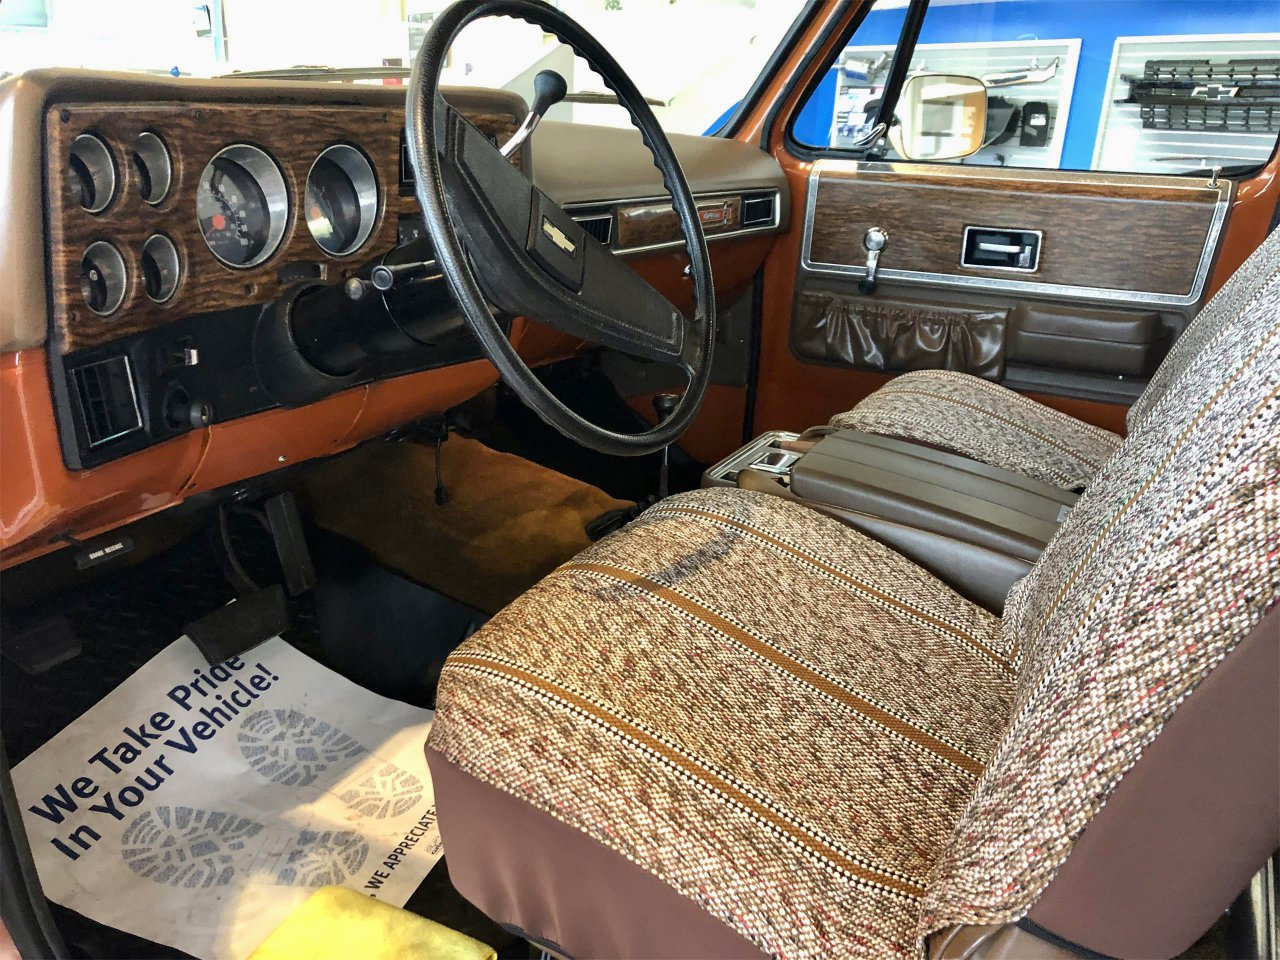 Blazer, Pick of the Day: The other Big-3 vintage SUV, ClassicCars.com Journal